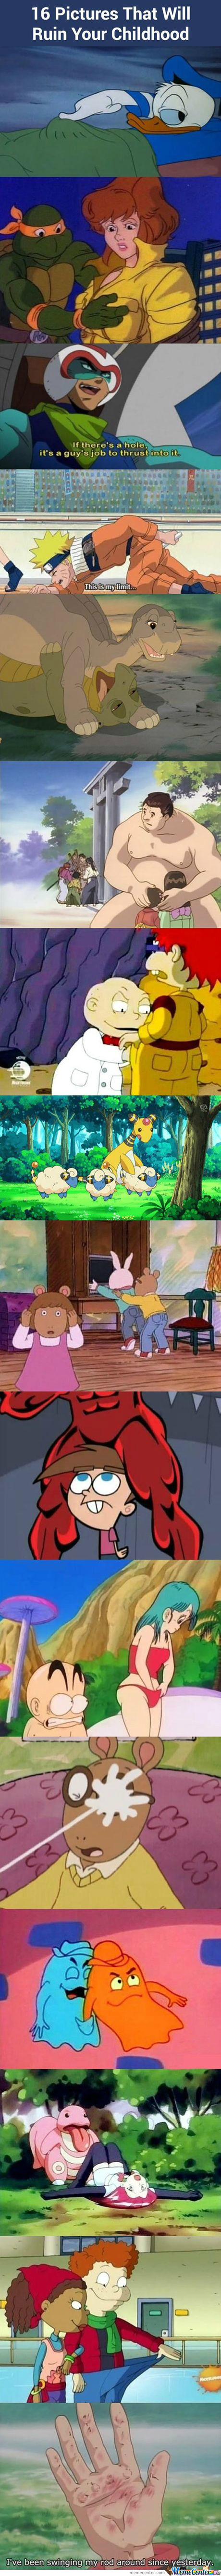 Has Your Childhood Been Ruined Yet?